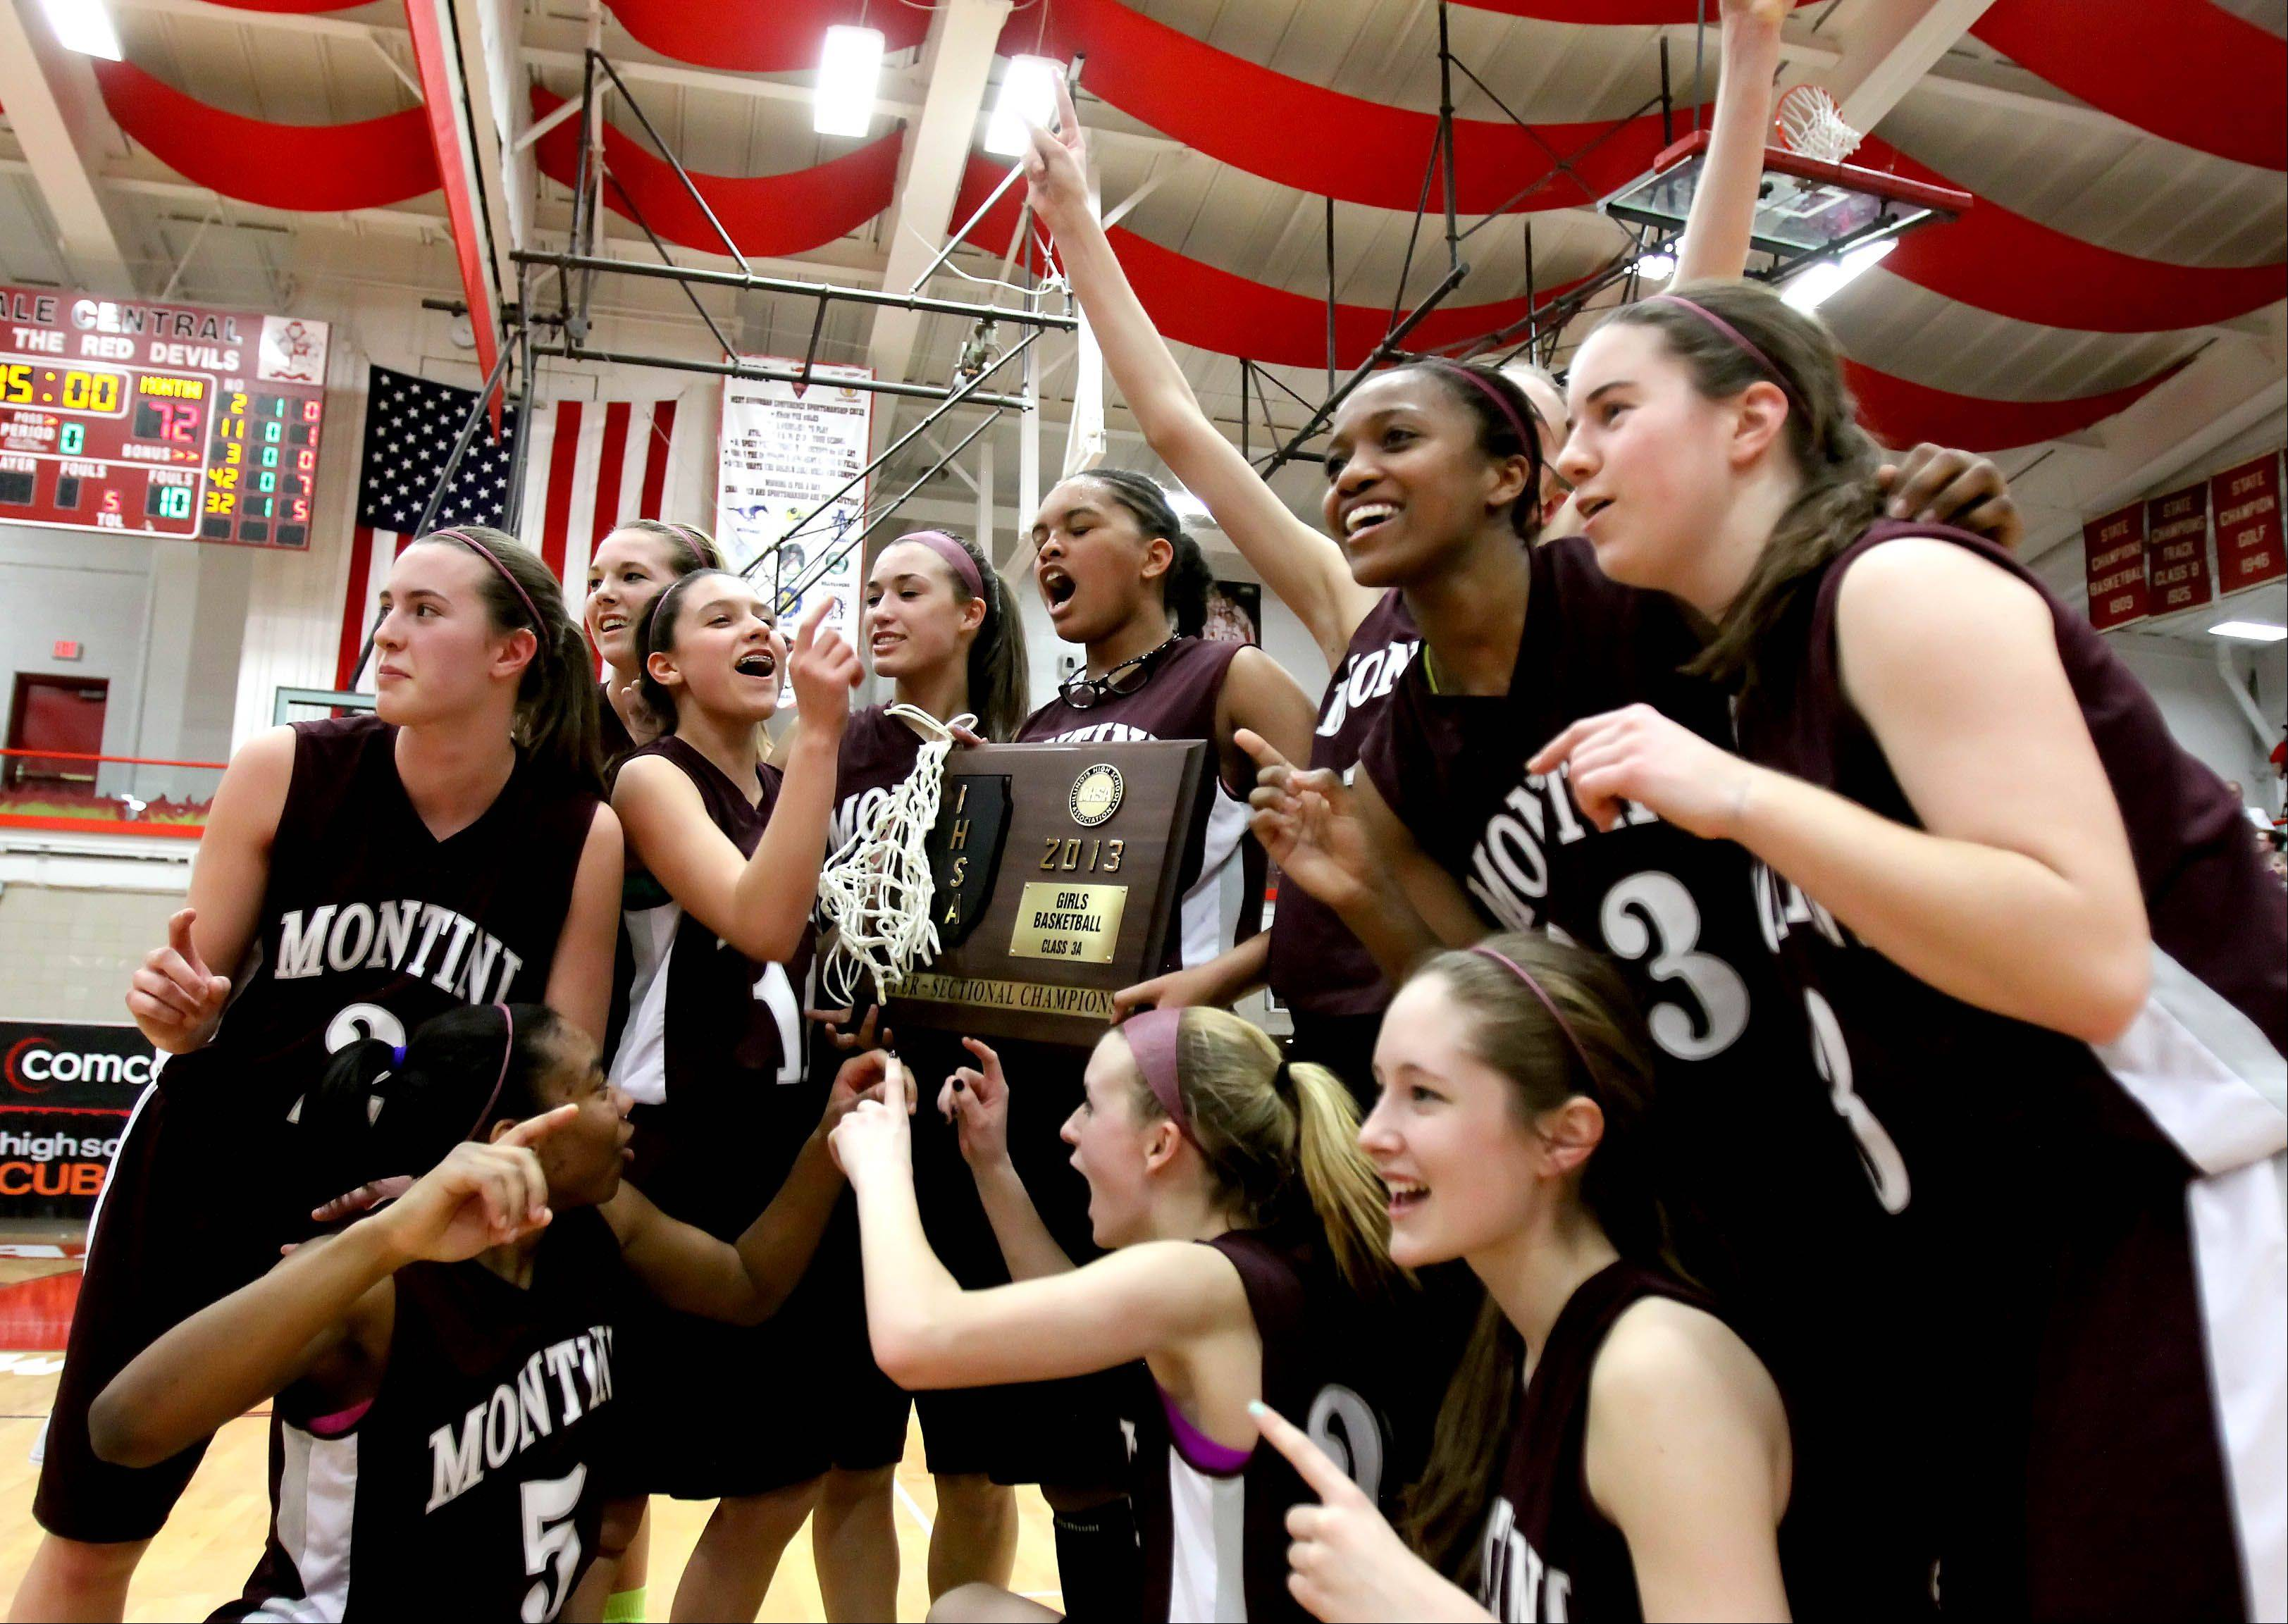 Images: Montini vs. Phillips, girls basketball